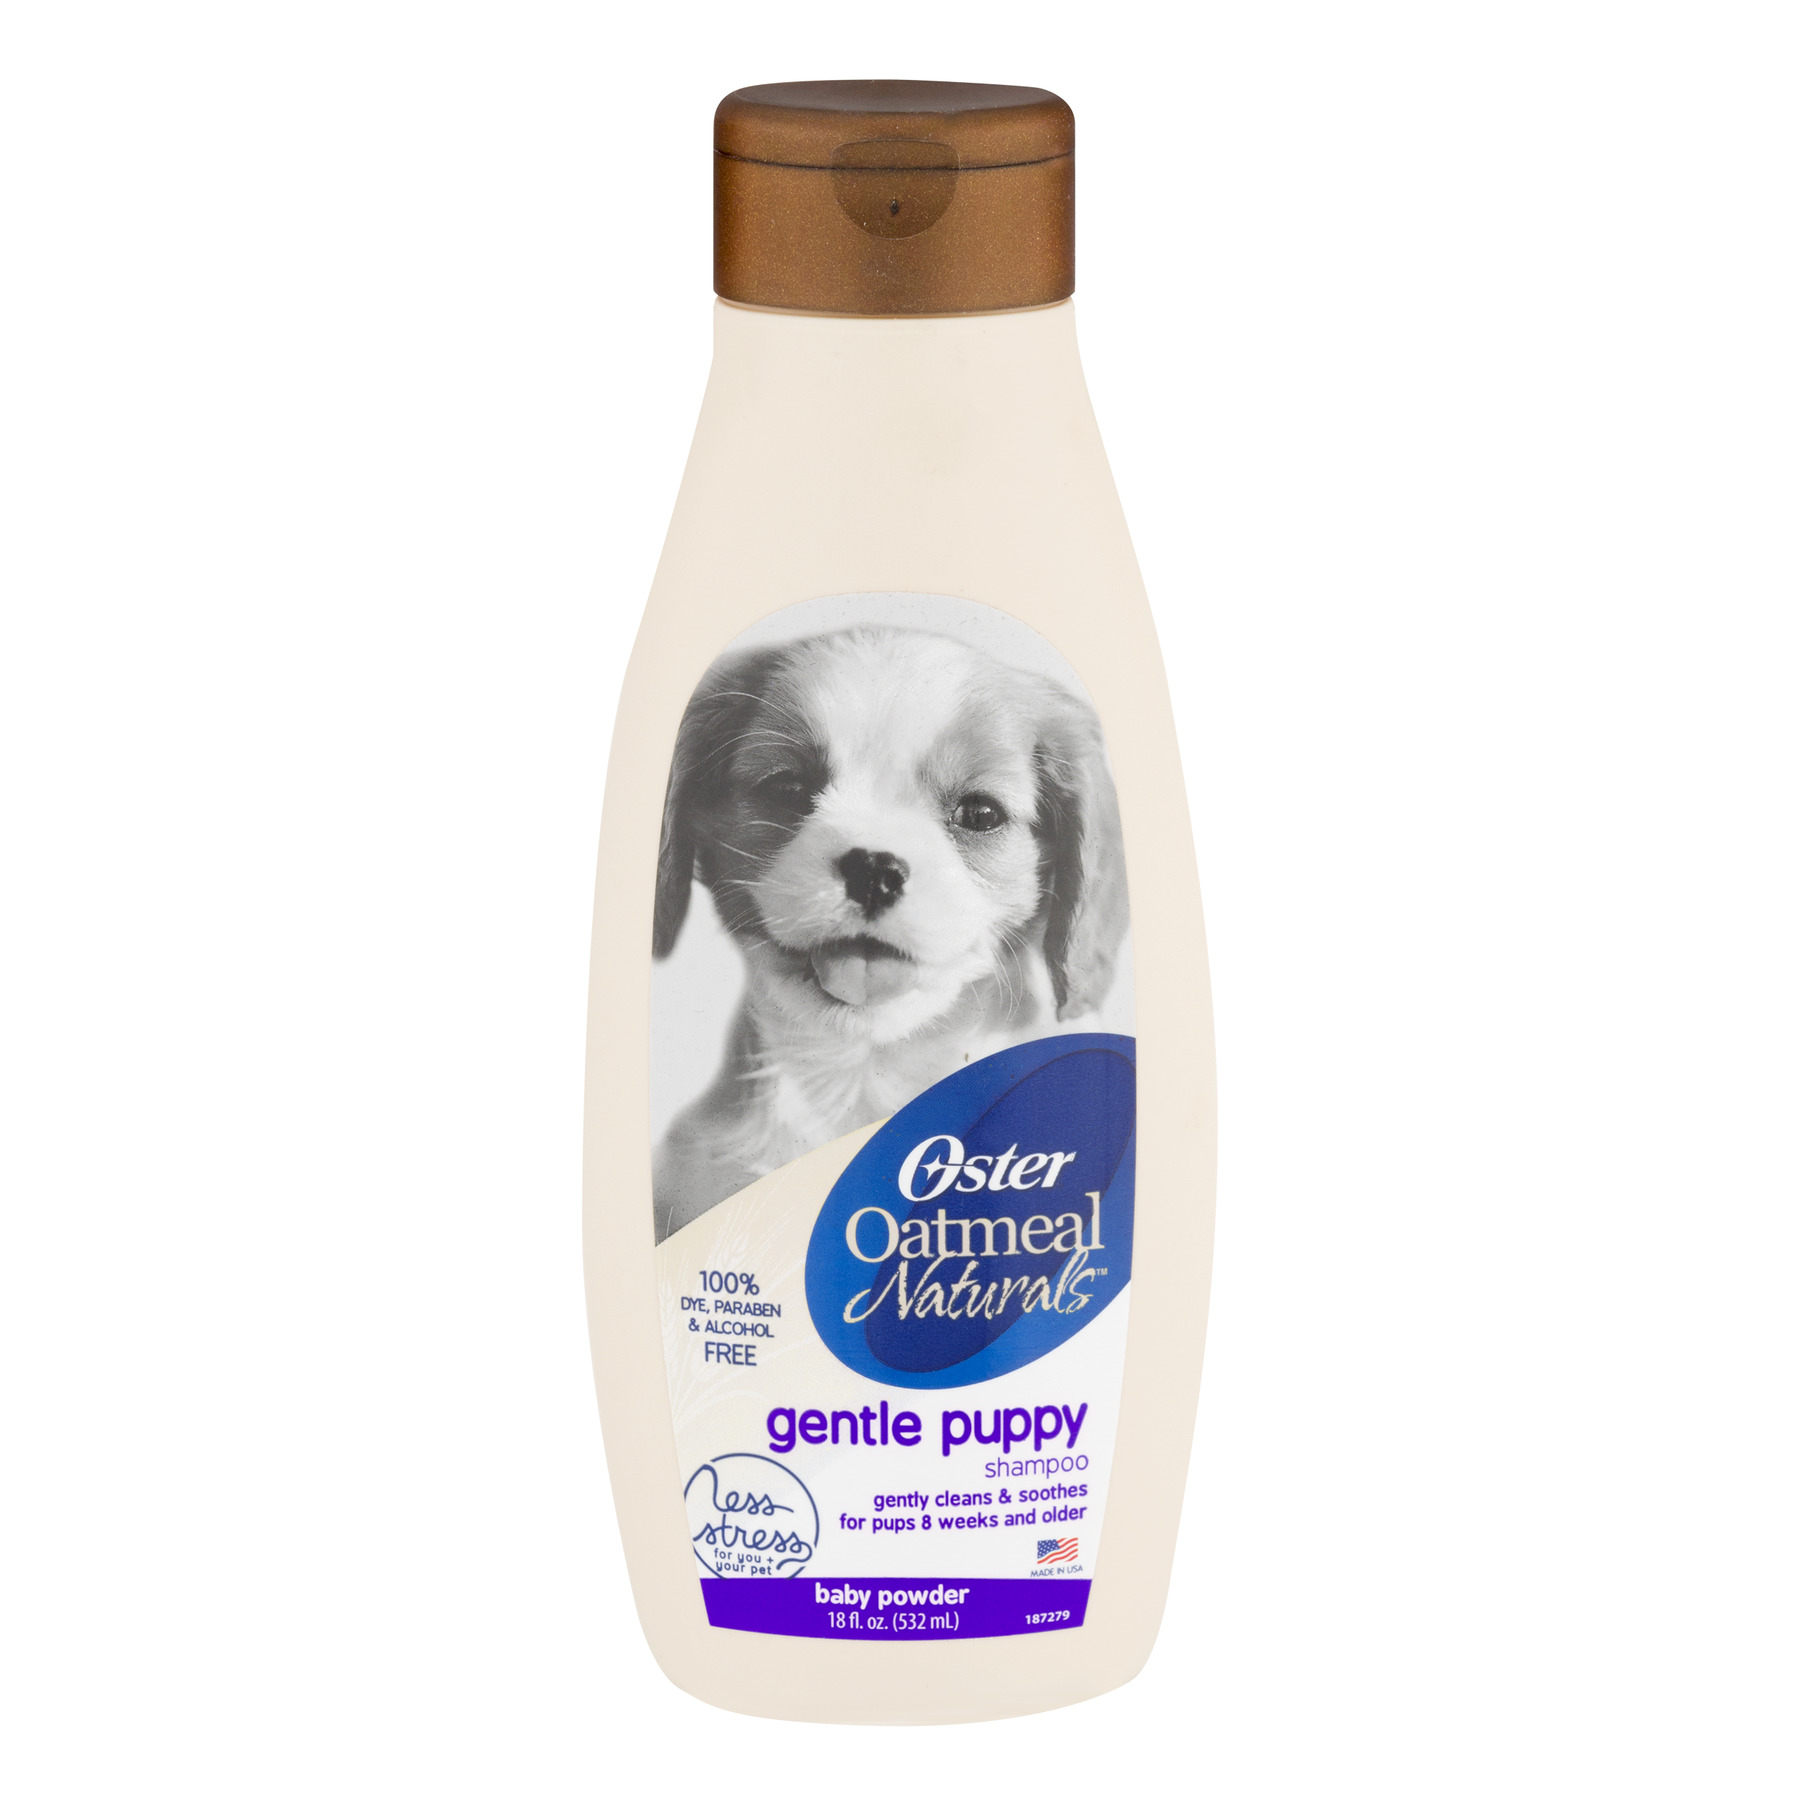 Oster Oatmeal Naturals Gentle Puppy Shampoo, Baby Powder Scent, 18 Fluid Ounces (078590-145-000)